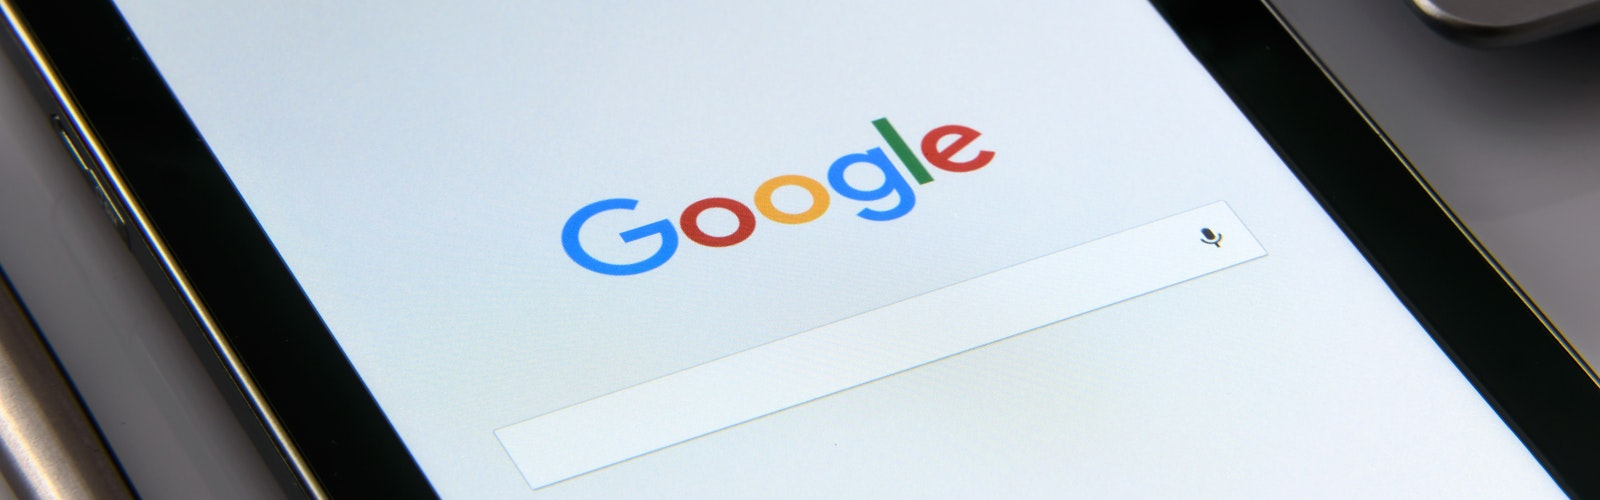 New Google search trends report sheds light on changing consumer habits